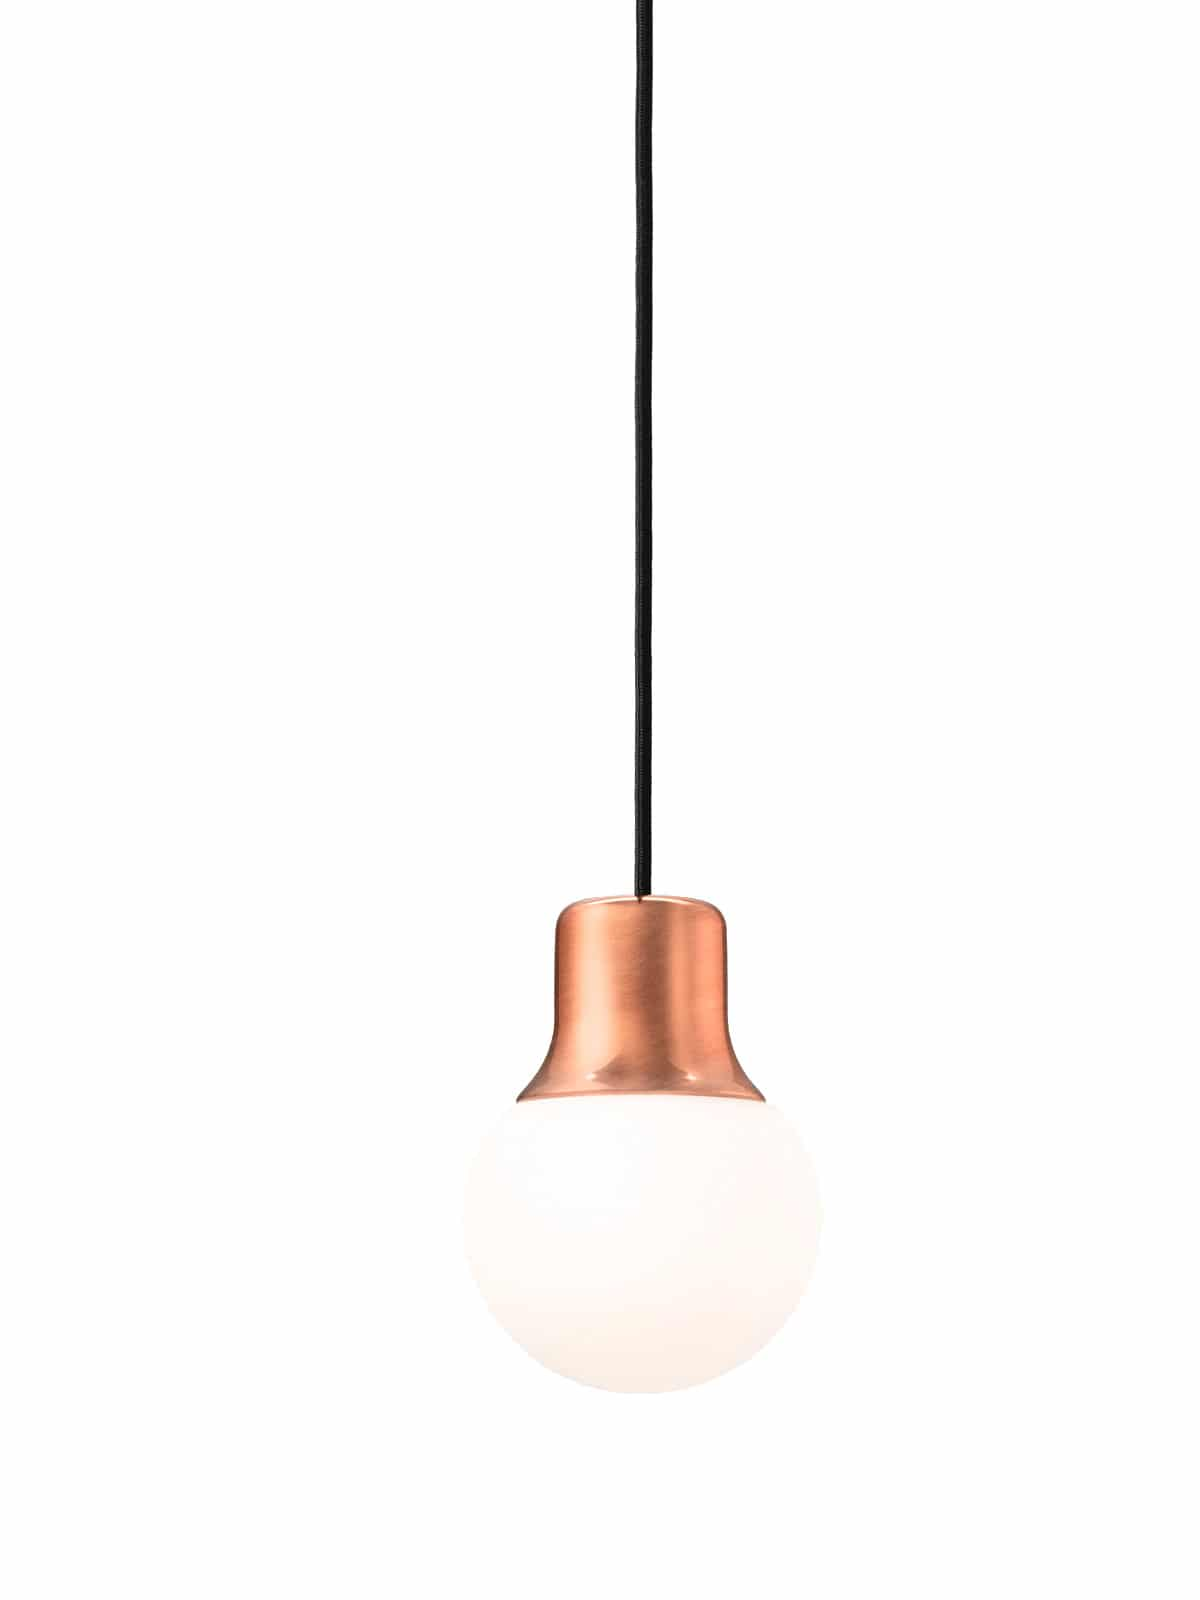 Pendelleuchte Mass Light NA 5 DesignOrt Onlineshop